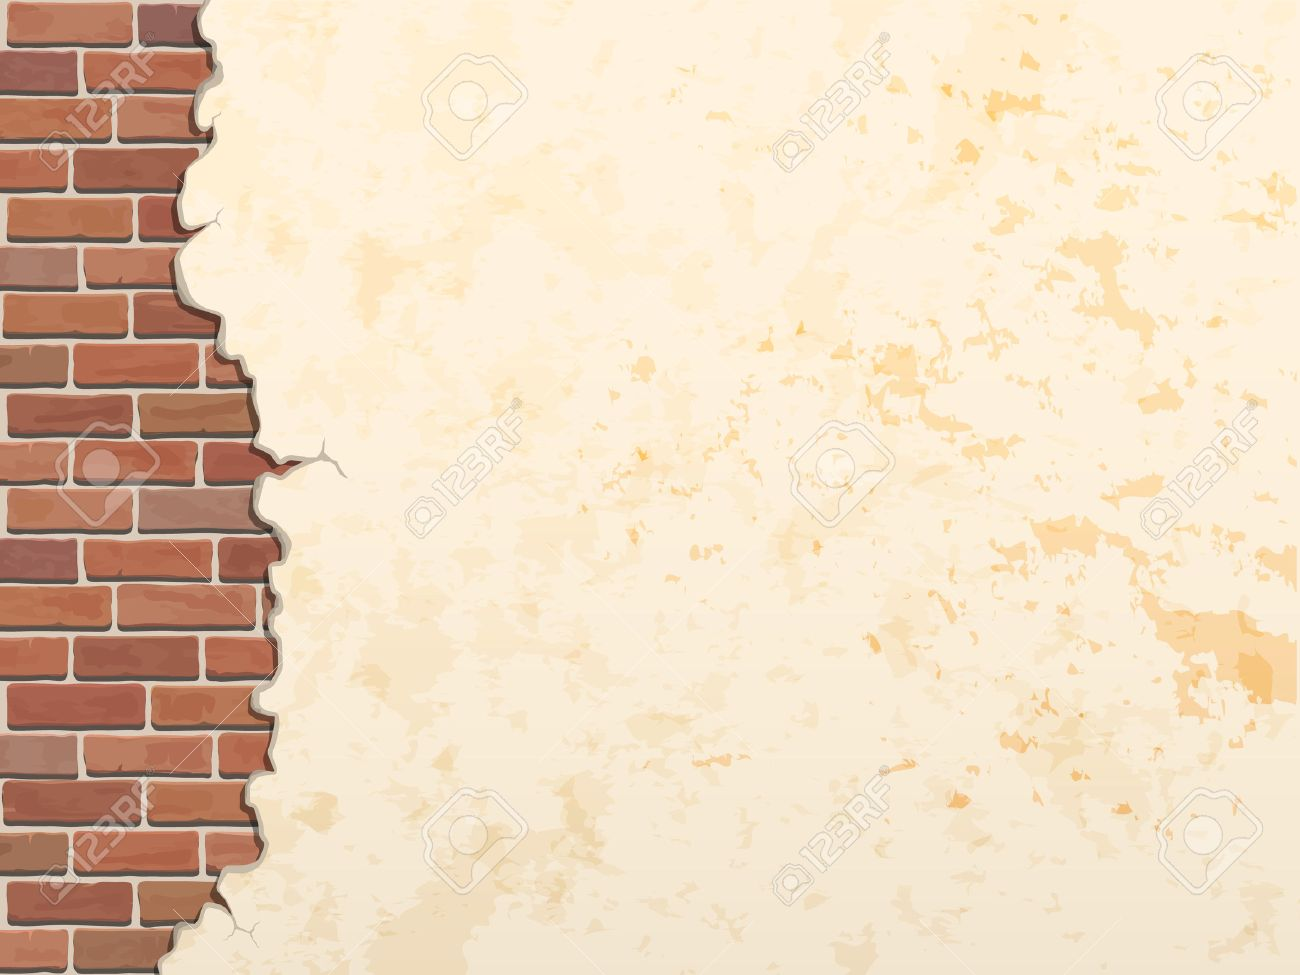 cracked concrete brick wall vintage  vector background Stock Vector - 36568549